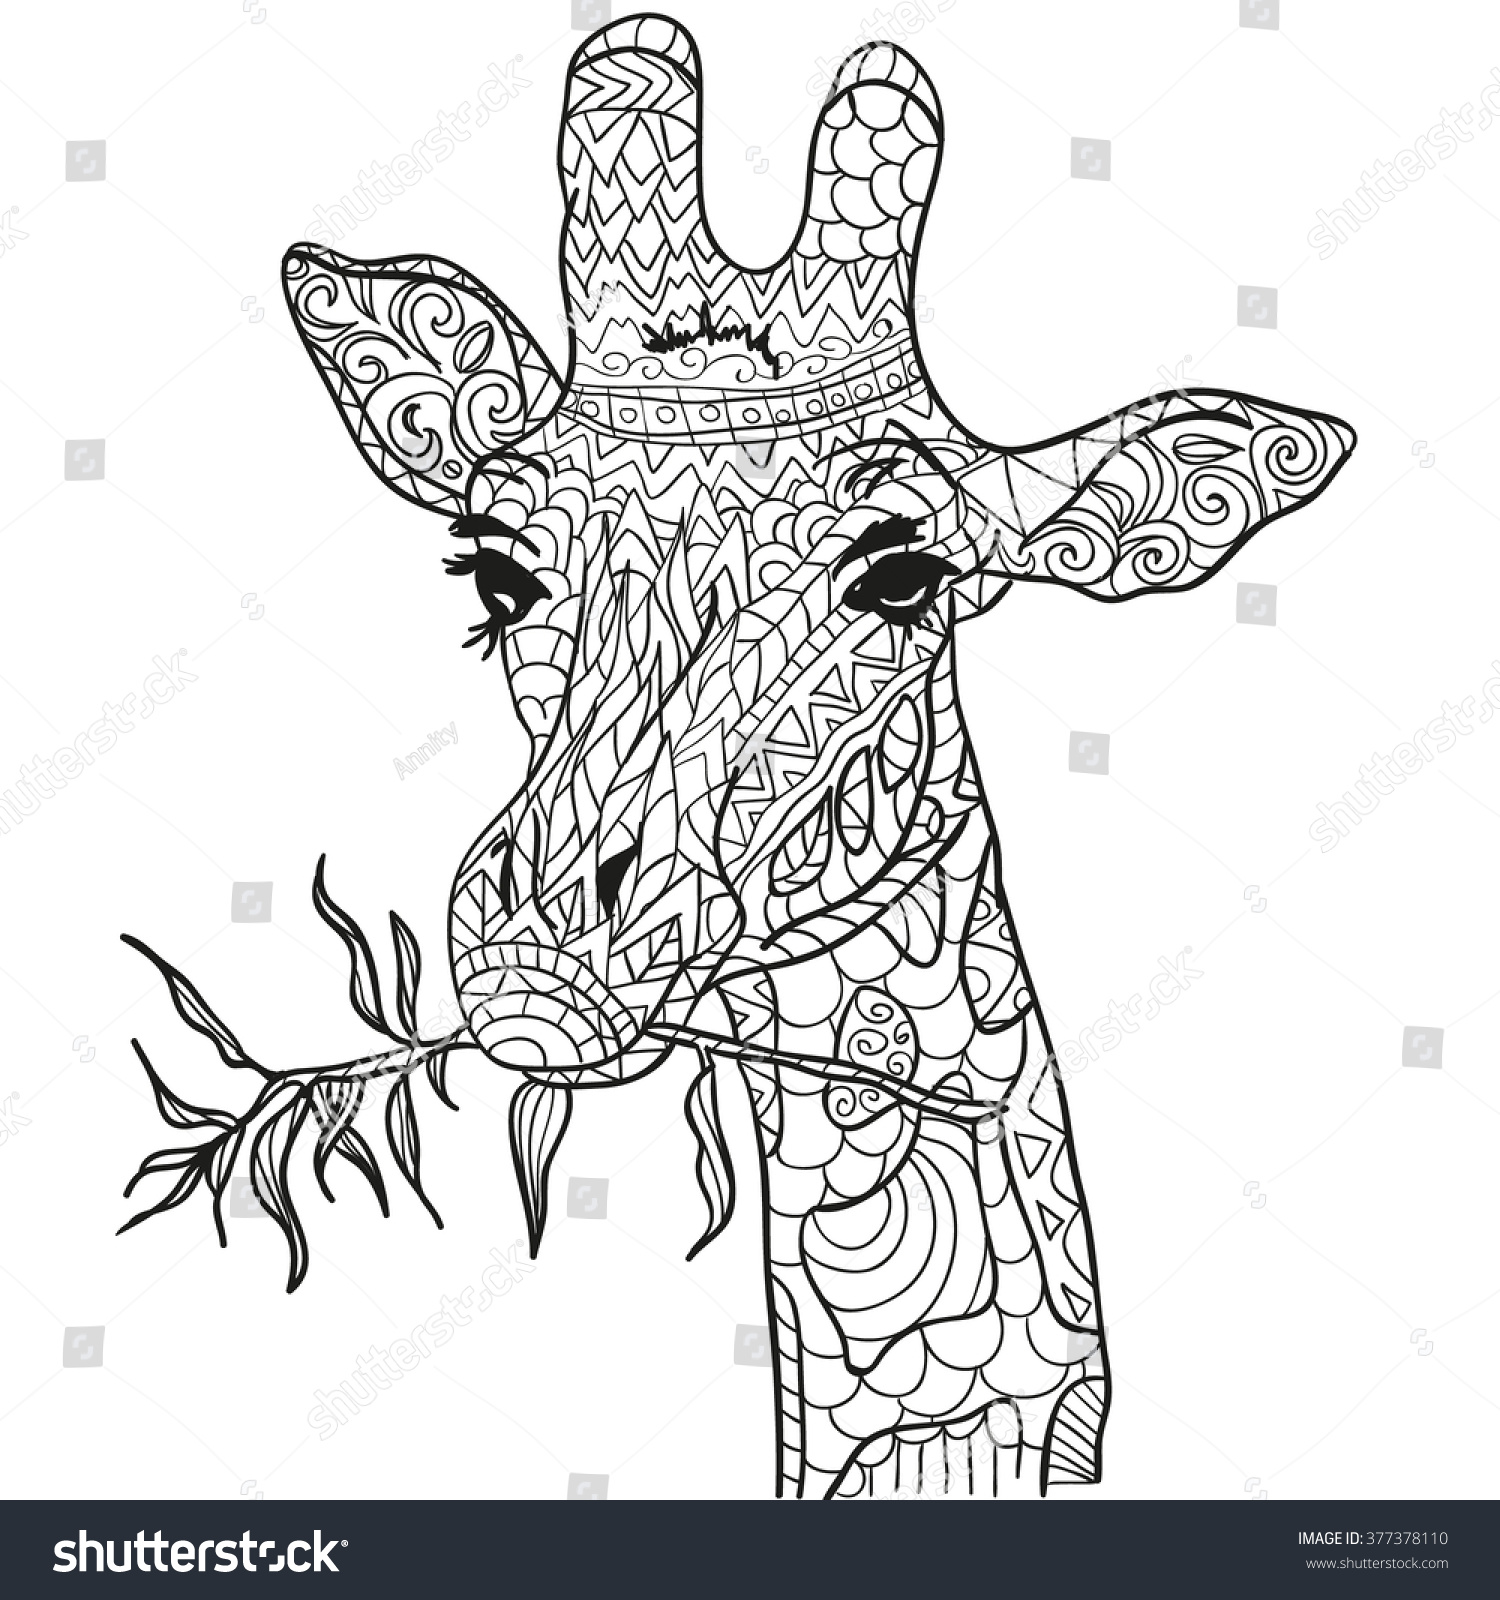 Coloring pages for adults giraffe - Hand Drawn Coloring Pages With Giraffe Zentangle For Adult Anti Stress Coloring Books Or